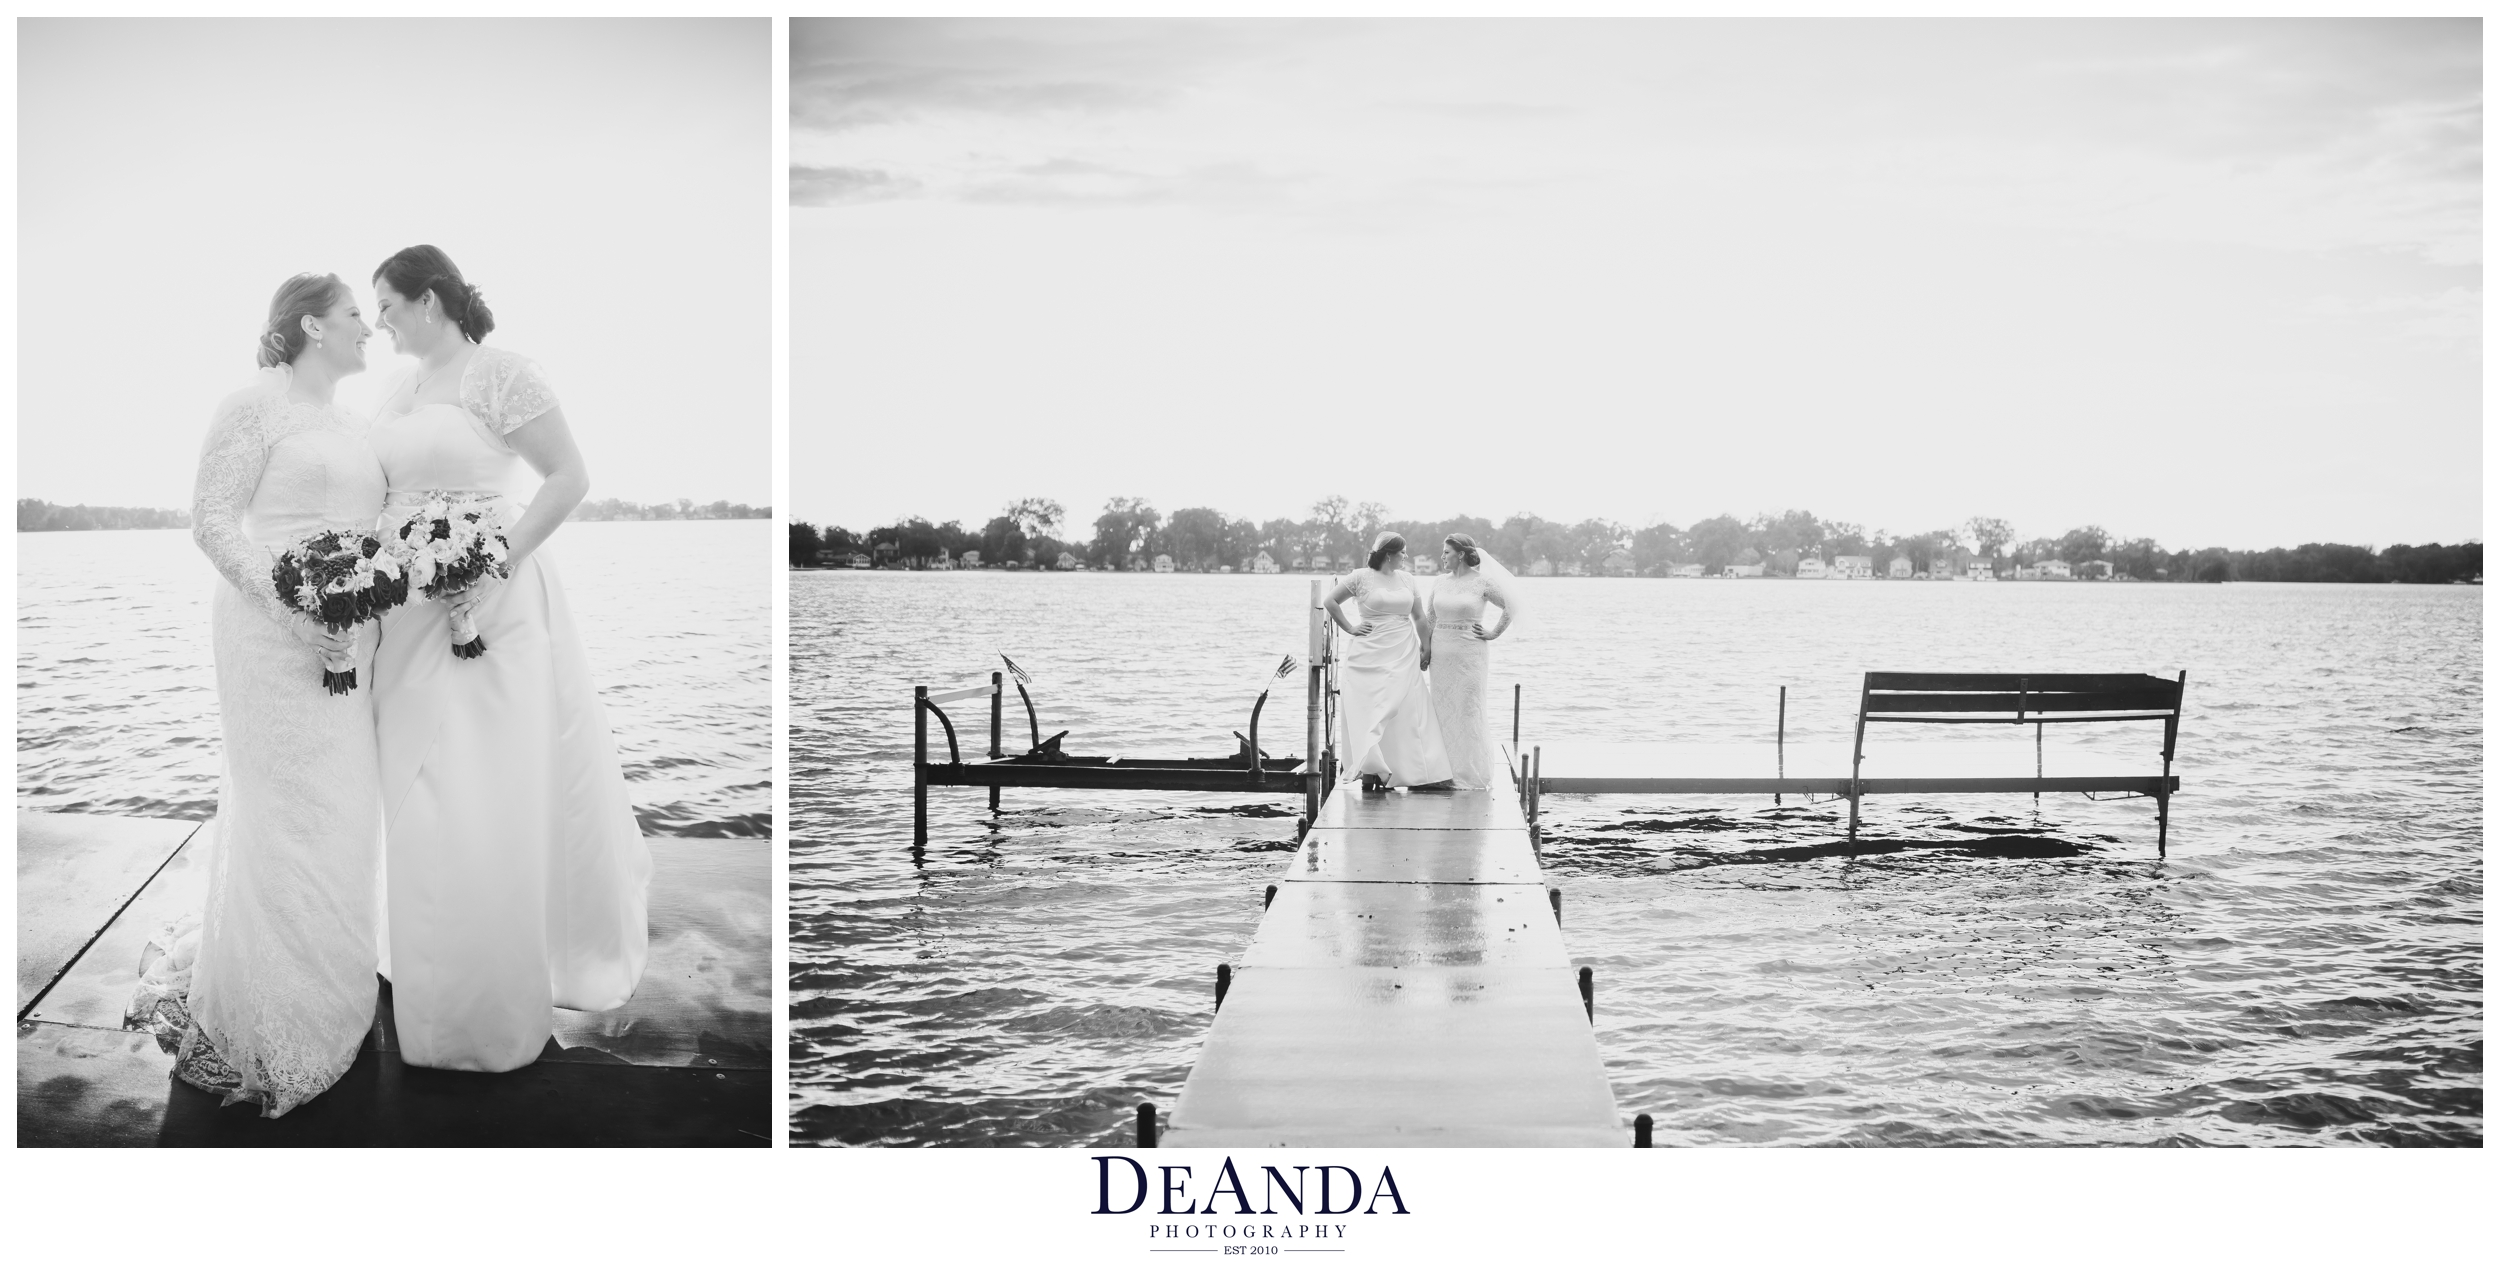 beautiful brides portrait of same sex couple on a lake pier over the water